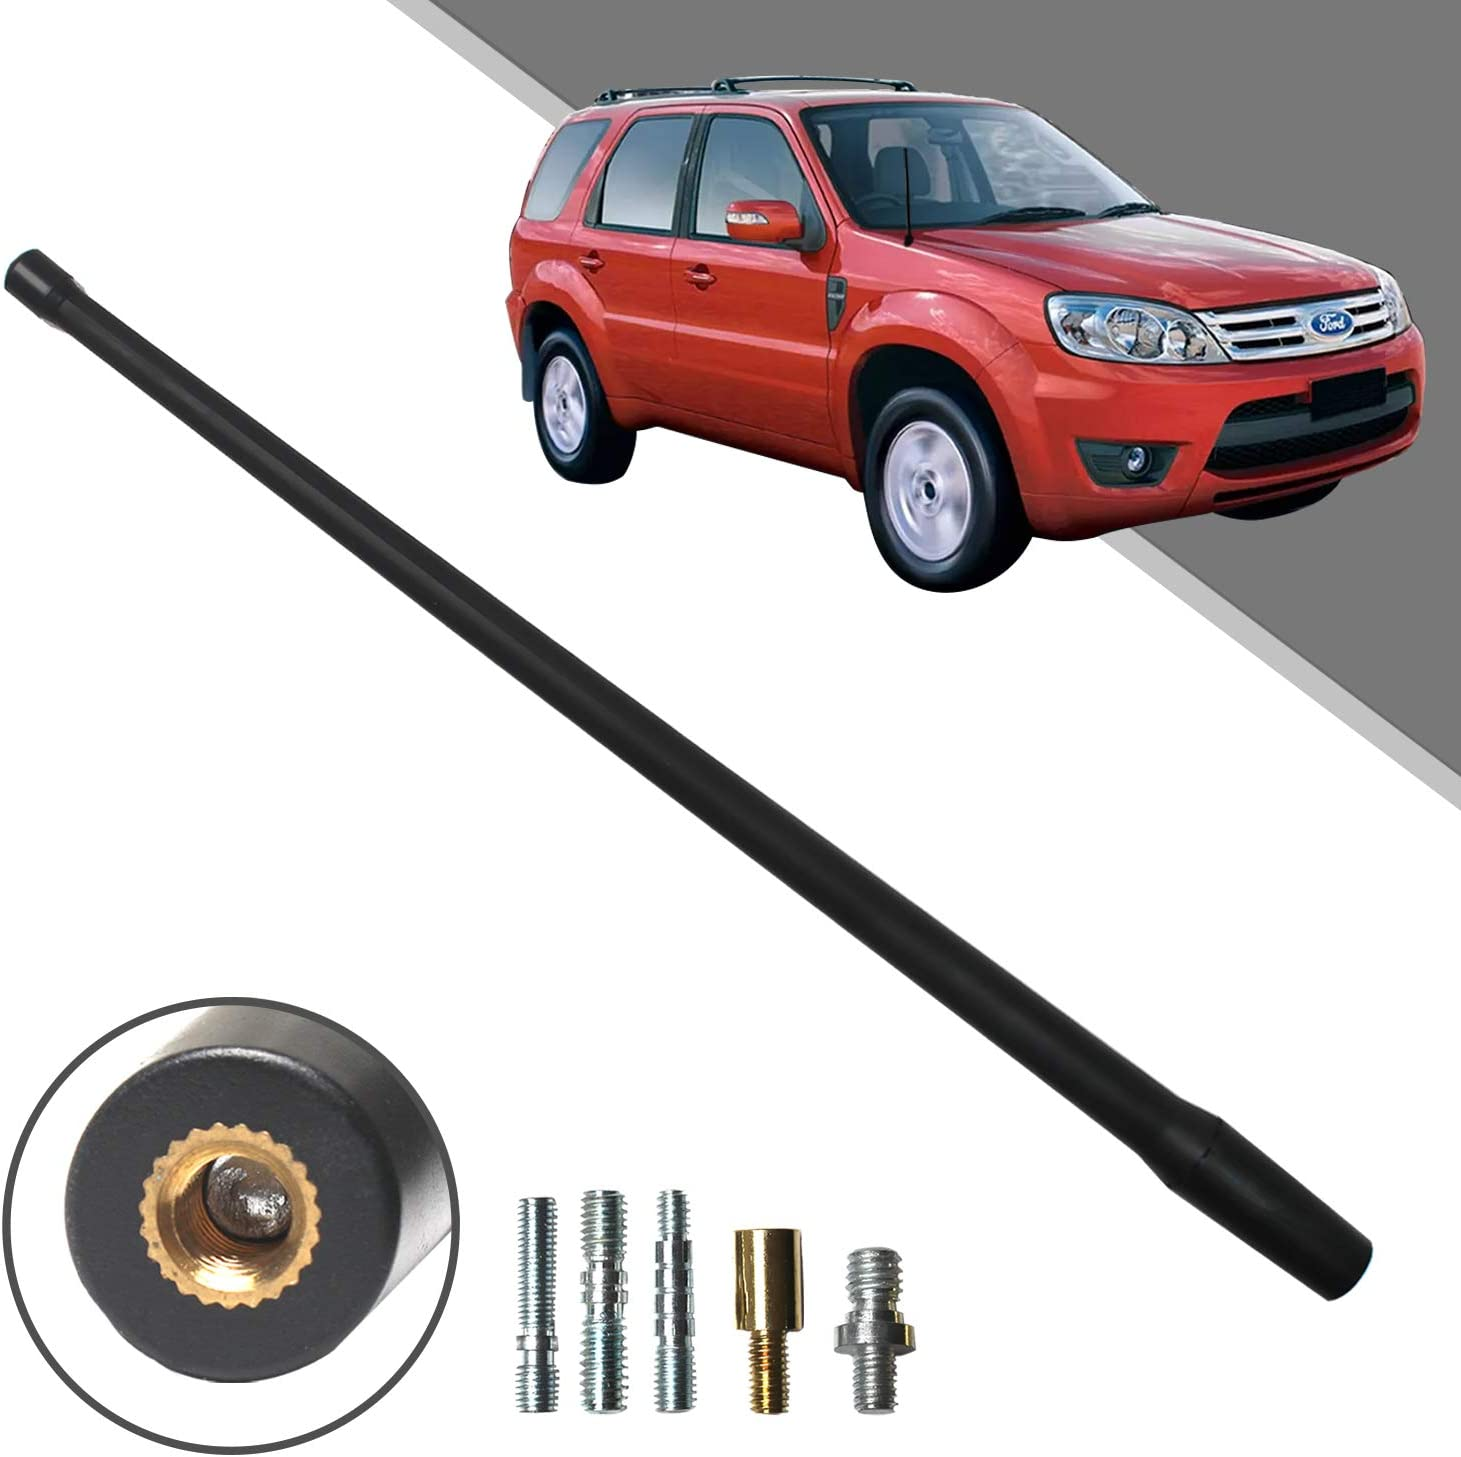 Optimized FM//AM Reception. Beneges 13 Inch Flexible Rubber Replacement Antenna Compatible with 2001-2012 Ford Escape